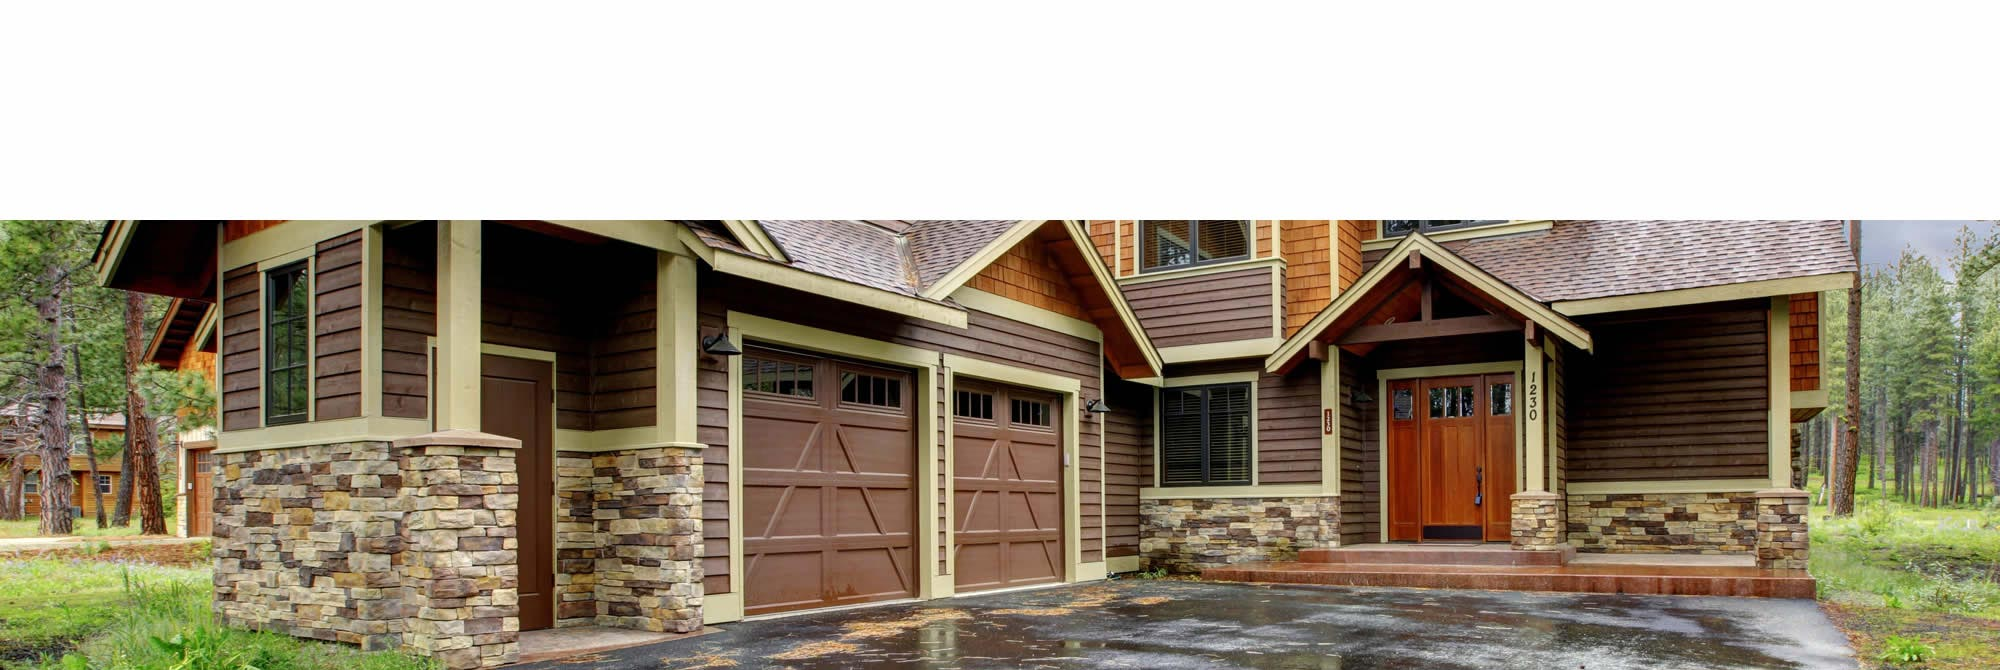 Garage Door Repair Queen Creek Az Door Repair Everett Garage Door Repair